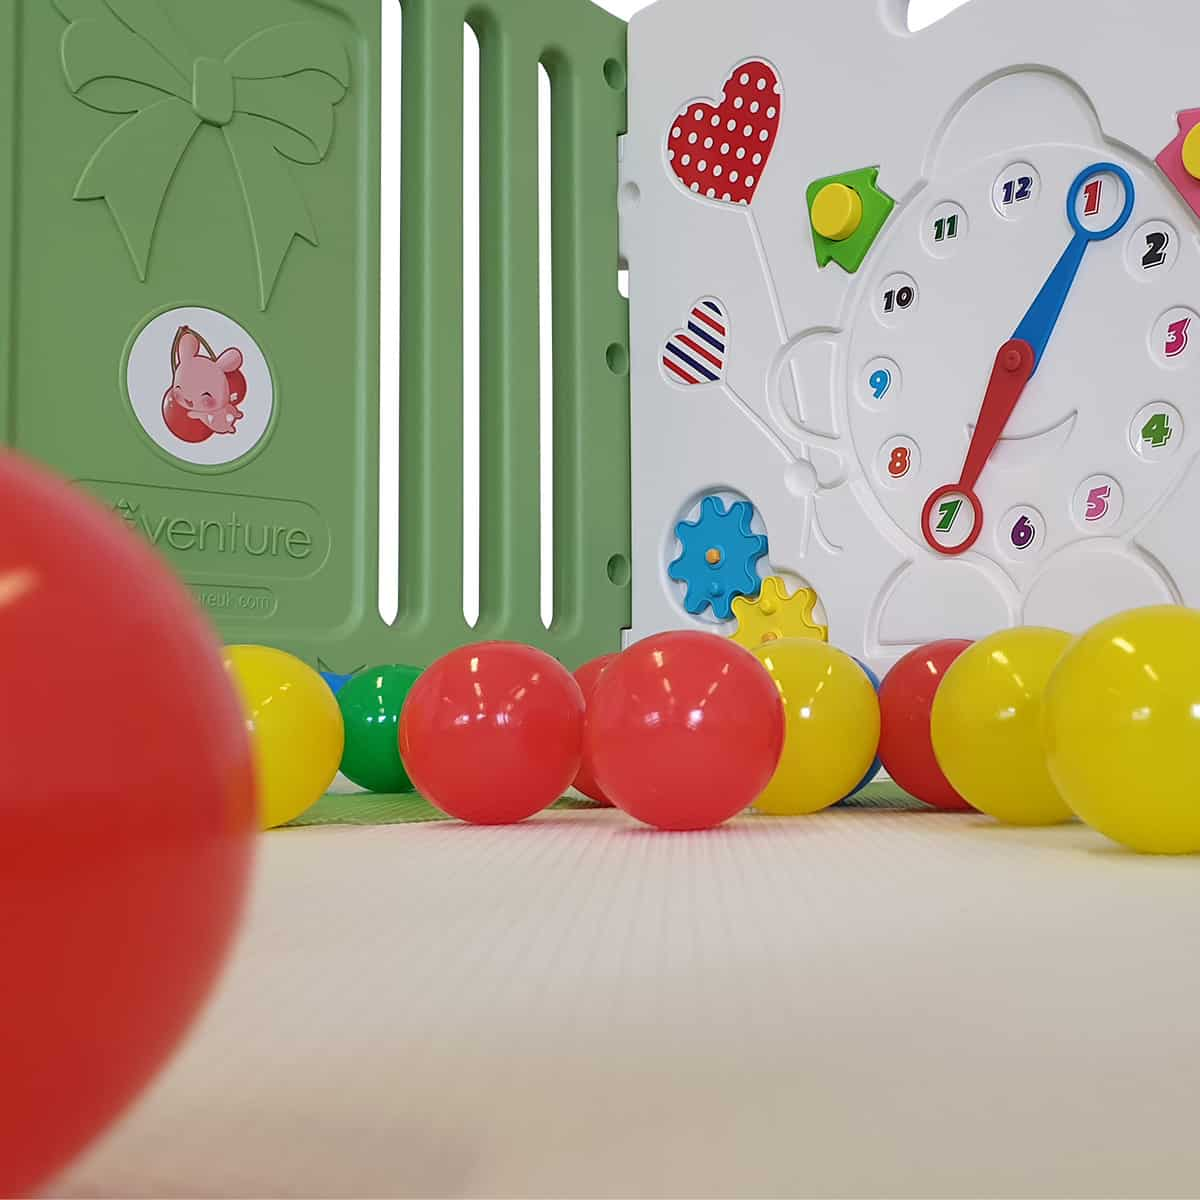 The Venture All Stars DUO Baby Playpen comes with colourful play balls and mats